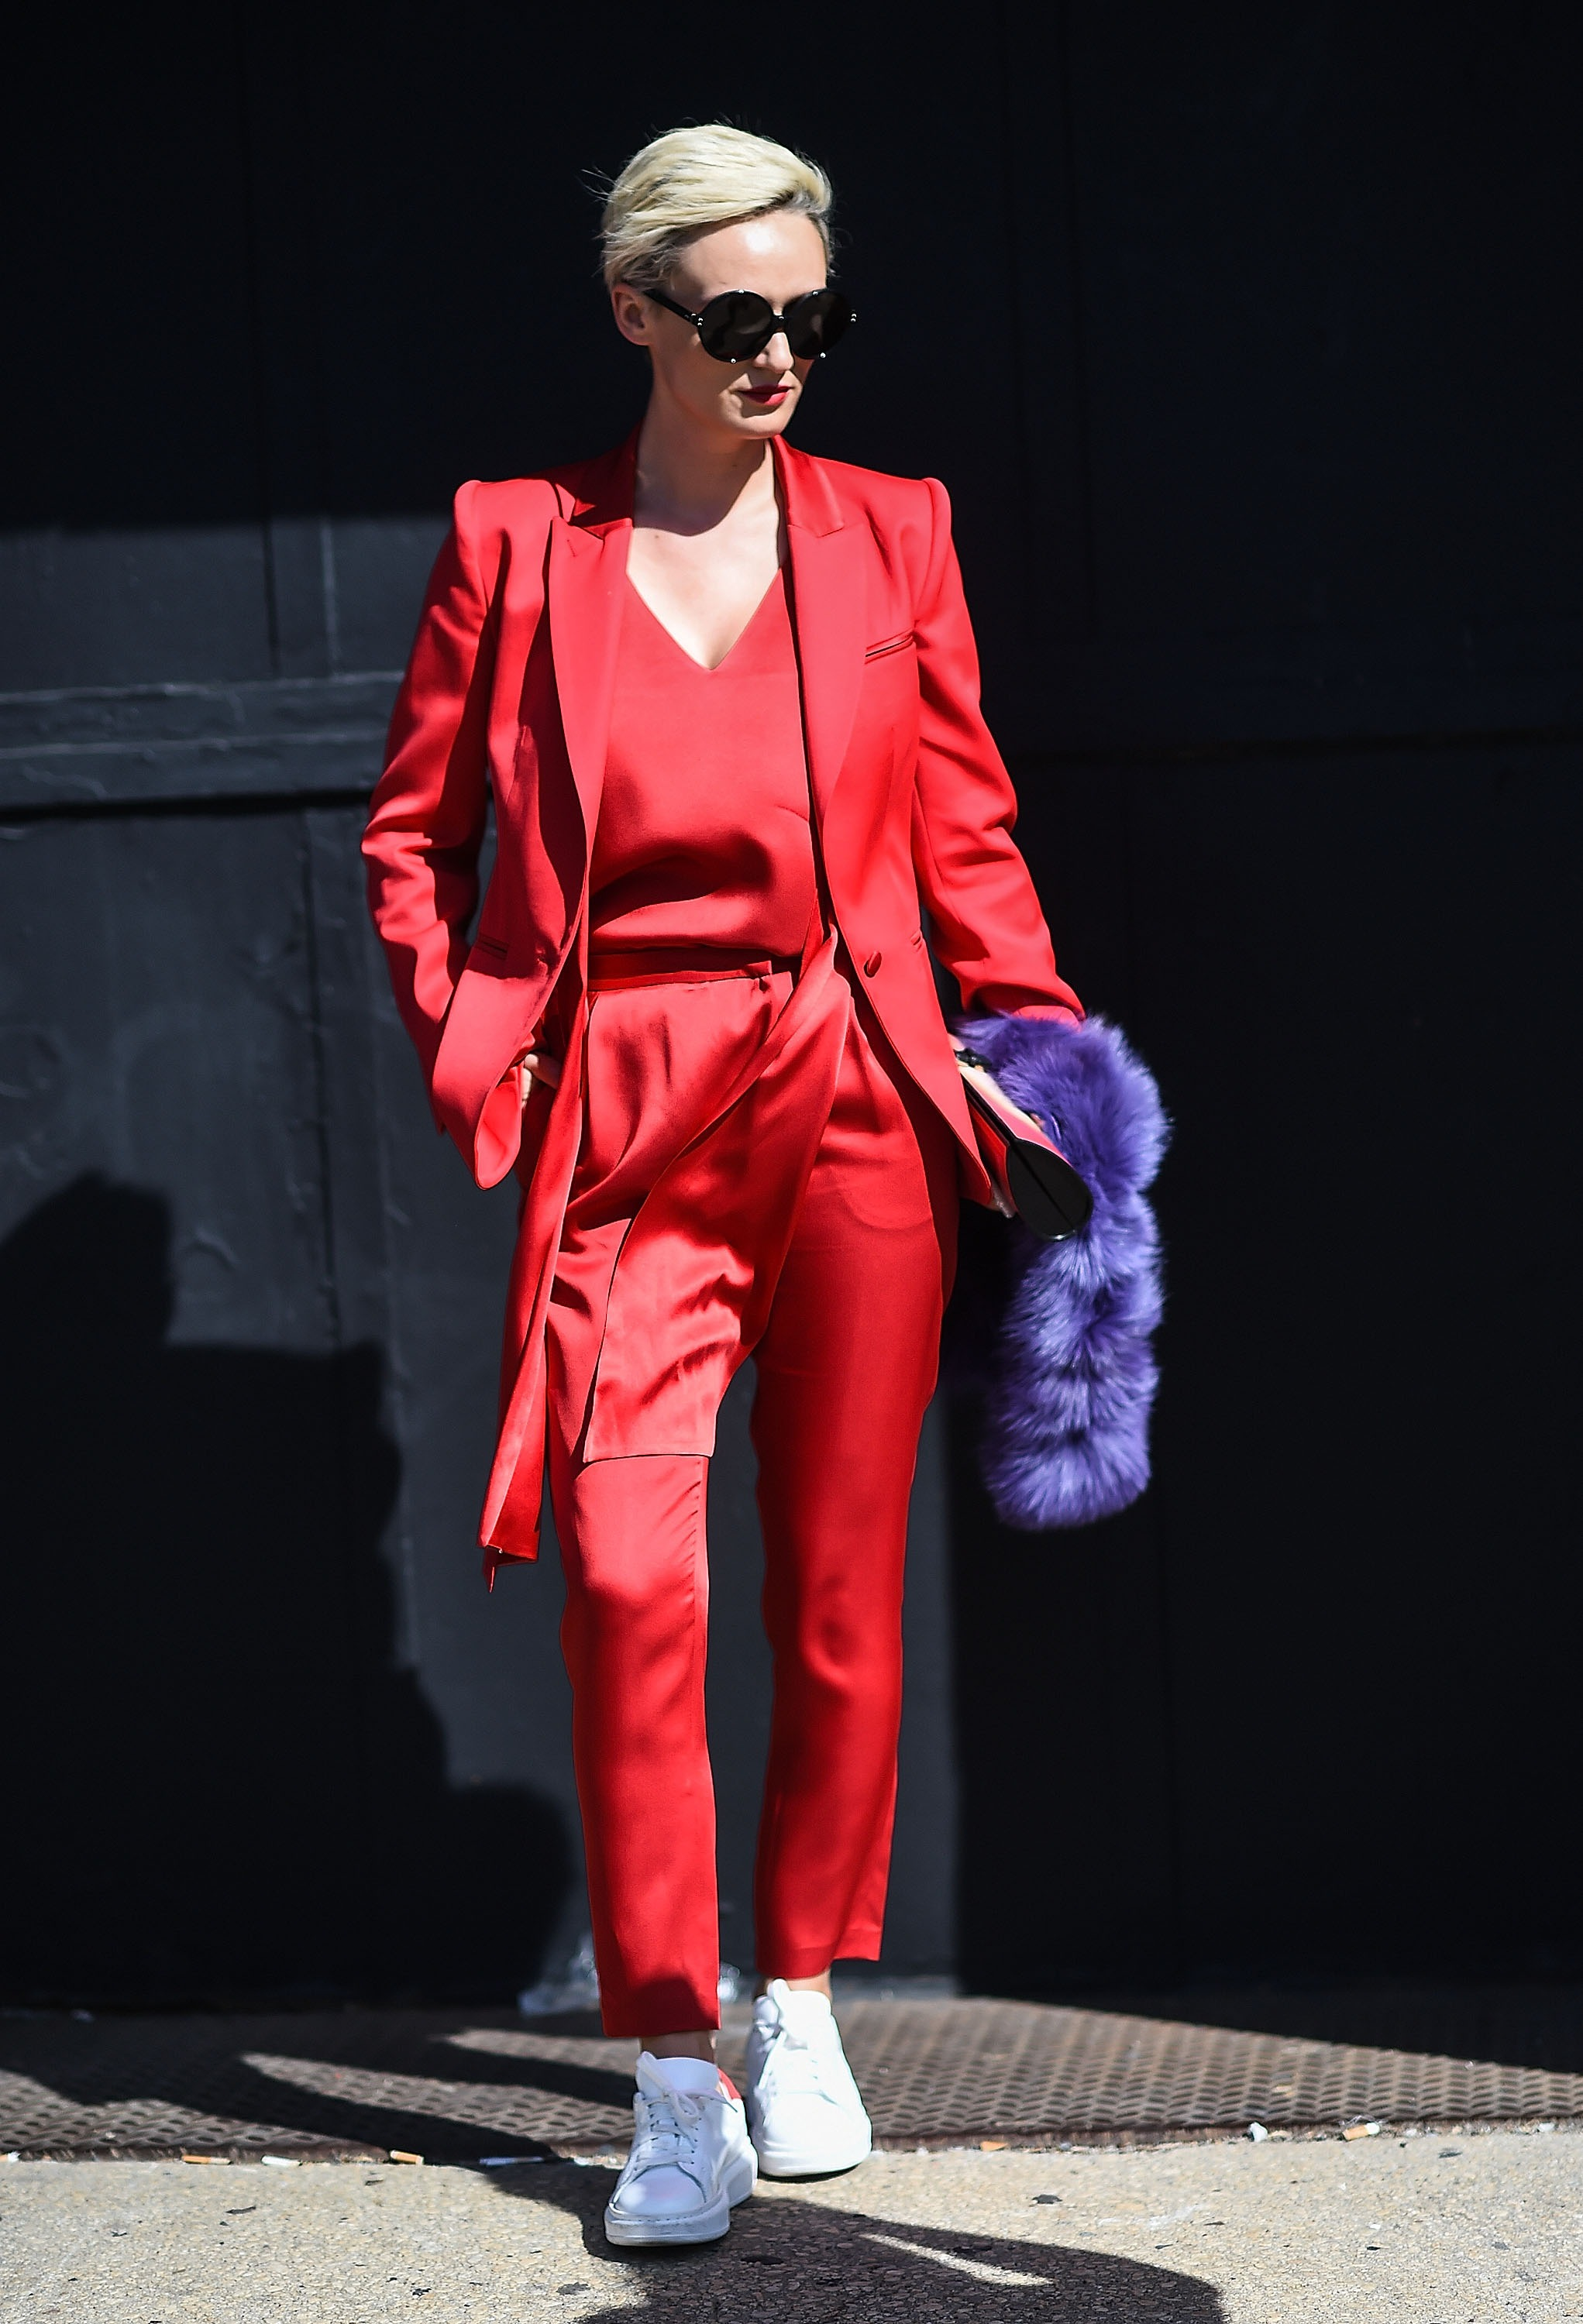 Monochromatic: Head-to-toe colorways reigned on the street-style scene this season.  Bold hues and sleek silhouettes ensure that this trend will help you stand out, no matter what the occasion.